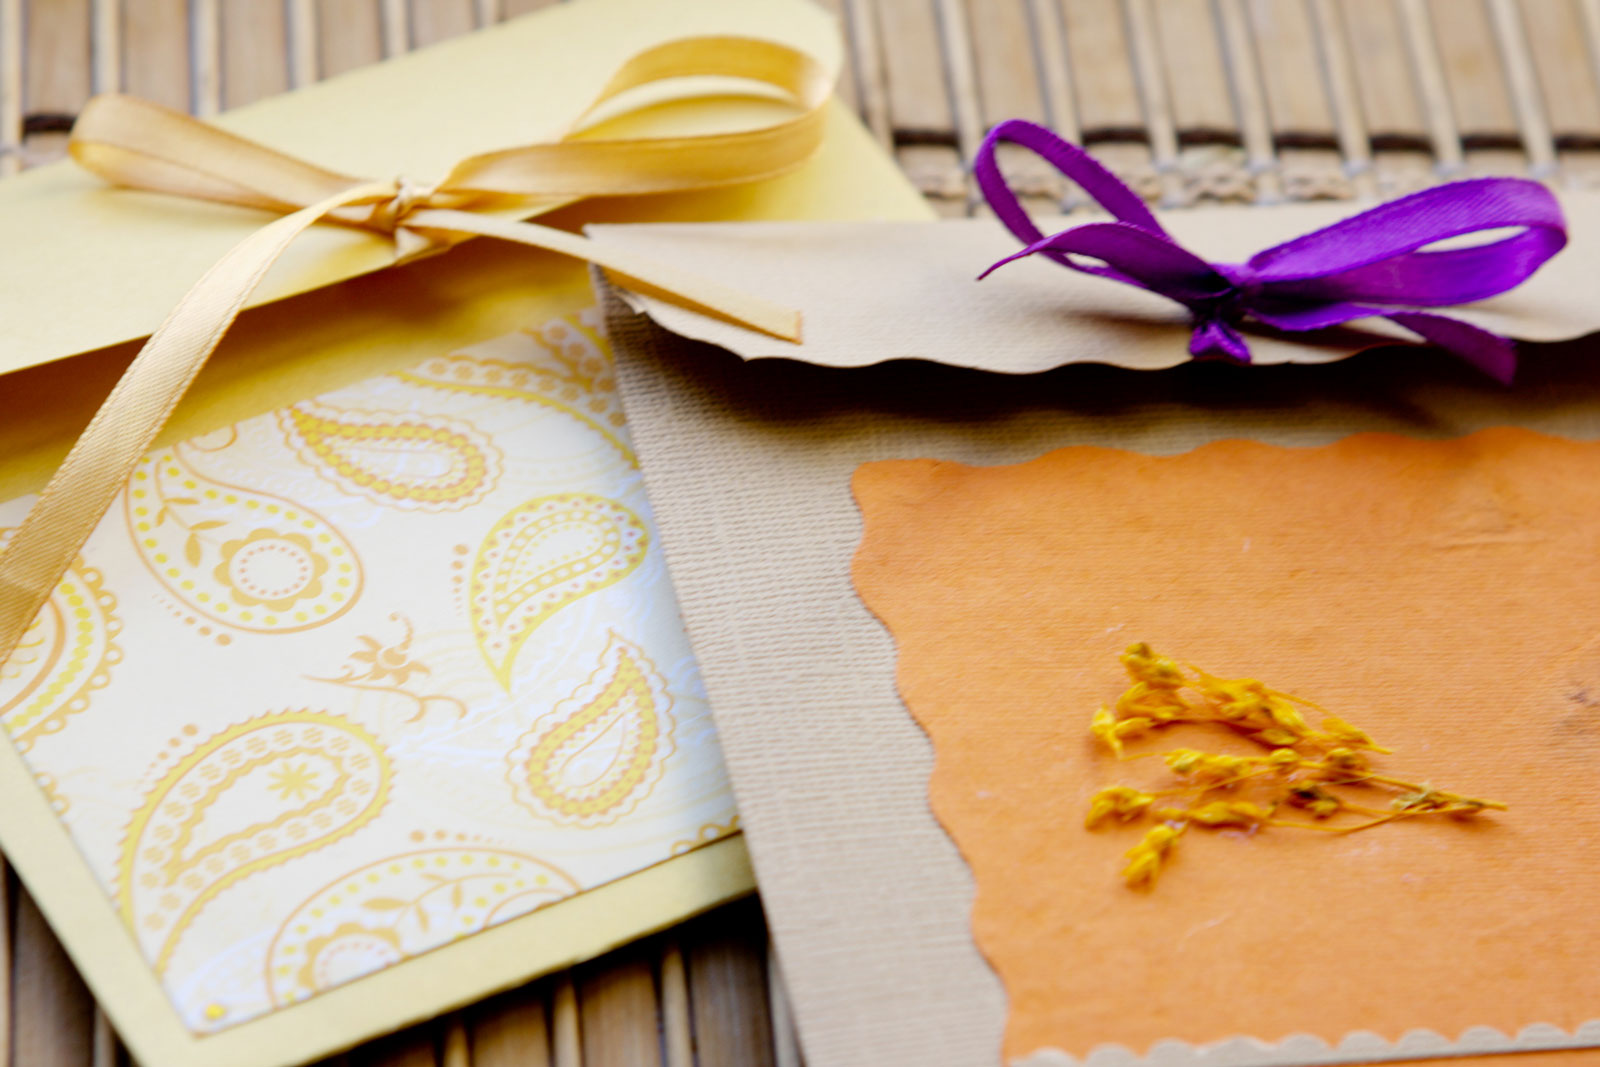 Bridal invitations for ceremonies in Greece!